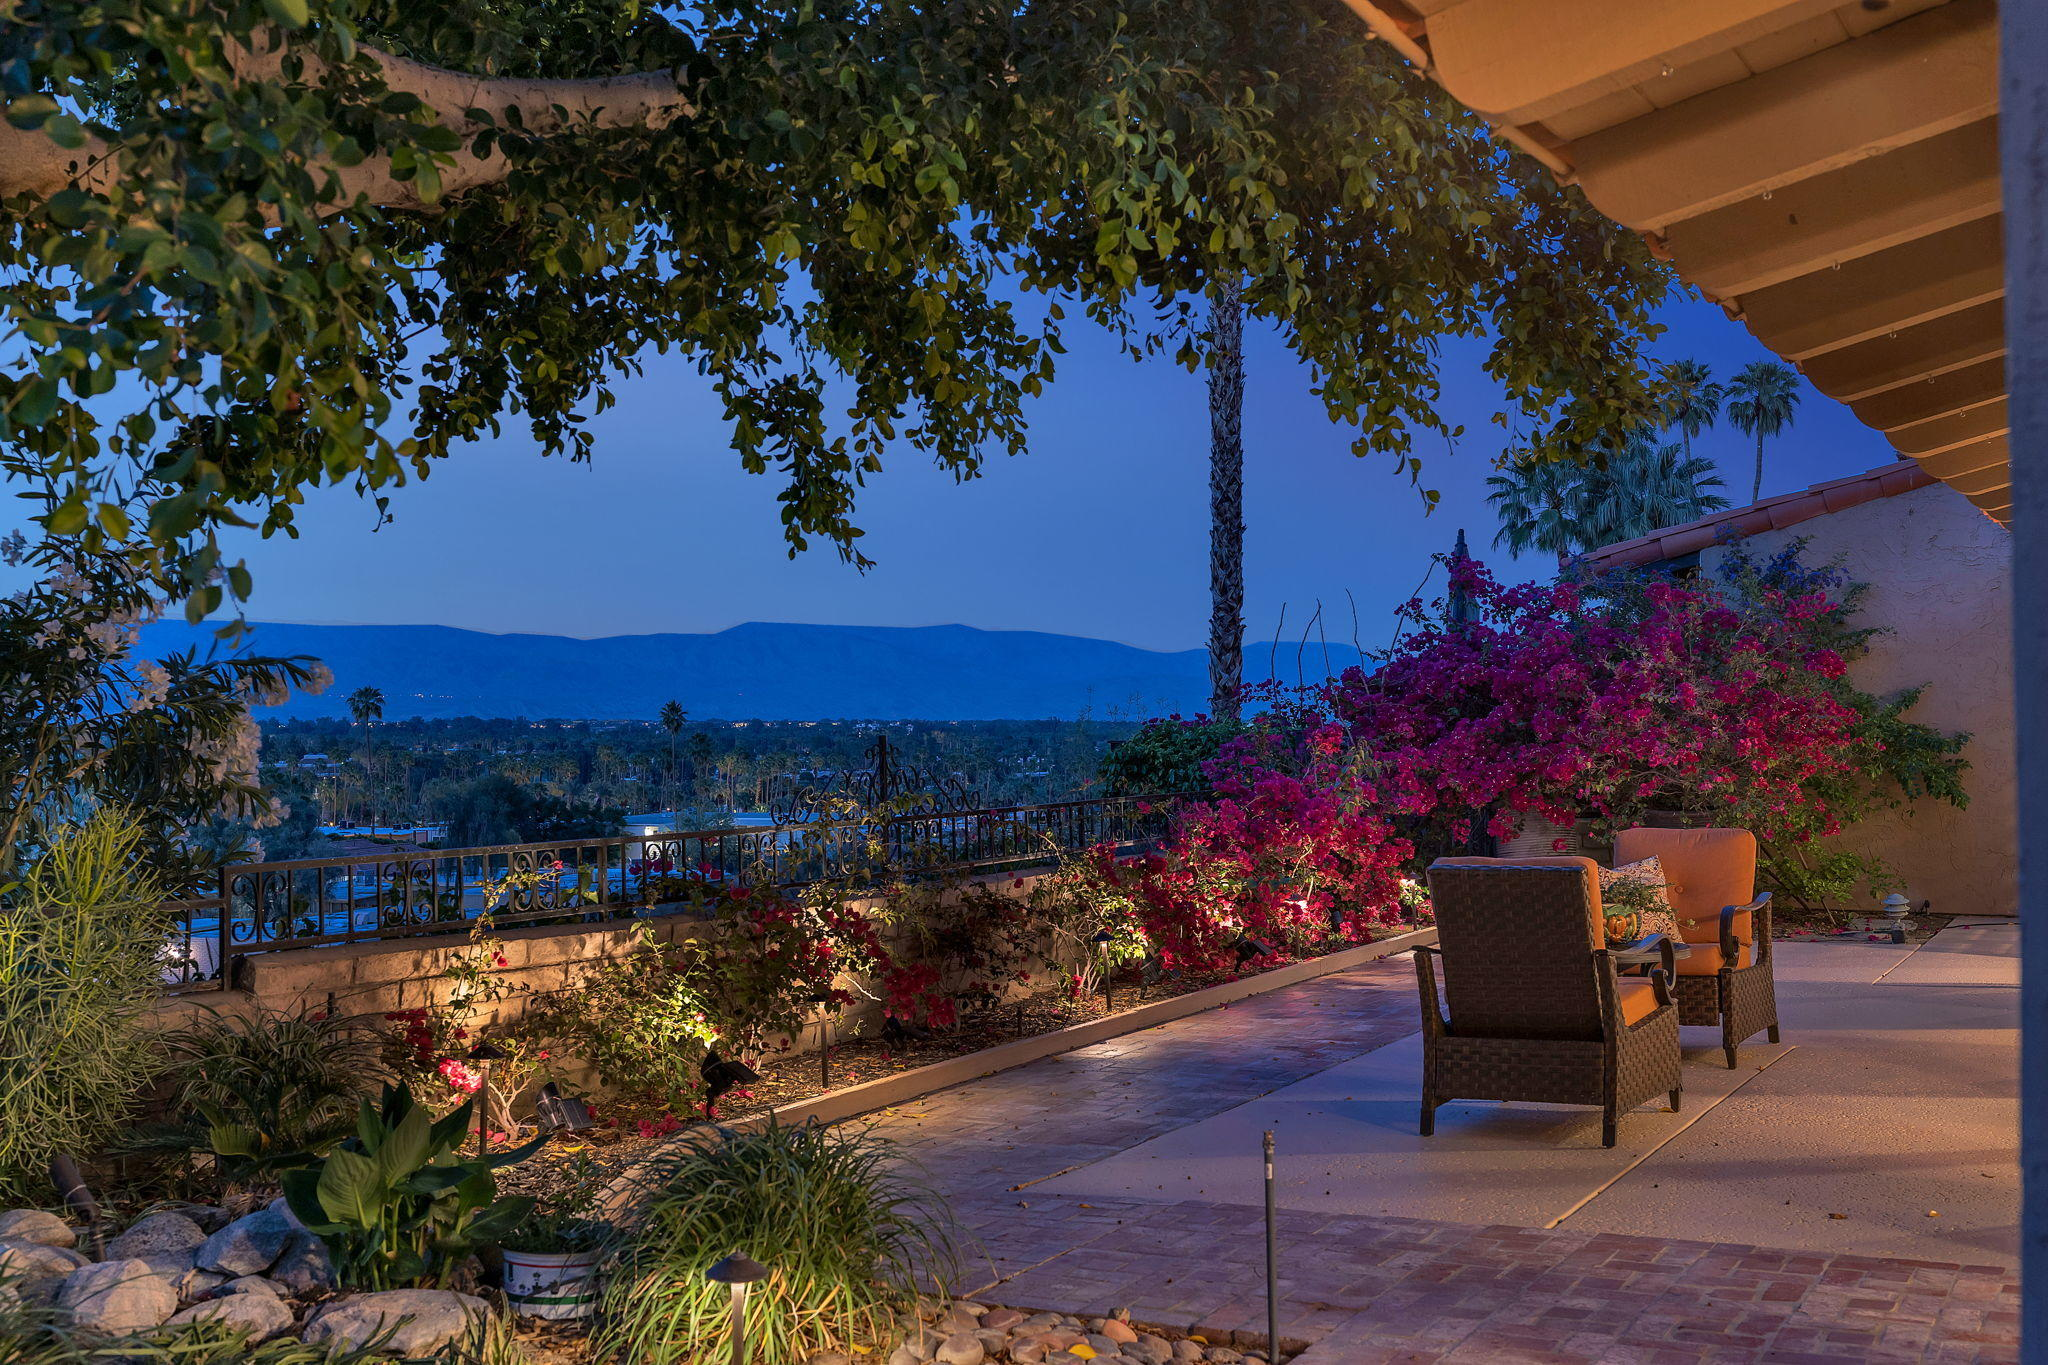 Enjoy quiet nights and city lights from this premium hillside location.  The views from the interior and wrap around patio extend across the valley floor to the San Bernardino Mountains.  The sleek designer finishes and energy efficient upgrades validate that details make the difference. An expansive foyer with Glass Art Chandelier and skylights welcome you to the light filled interior with wall-to-wall glass sliding doors.  A vaulted wood beam ceiling, tile floor throughout and Great Room design  will compliment traditional or modern furnishings. A DREAM Kitchen beckons those who LOVE to COOK and/or entertain. DACOR gas range, Fisher-Paykel Dishwasher Drawer, Granite counters, Center Island, an abundance of cabinetry/storage and VIEWS overlooking the pool/spa. Two bedrooms have remodeled En Suites and direct patio access.  The spacious third bedroom is currently used as home office/den with direct pool/patio access. High HVAC efficiency systems with Allergan filters, Evaporative Cooler, Water Heater, additional ceiling insulation and heated floor in the Master Bathroom are just a few of the upgrades in 2018..  The true highlight is enjoyed outdoors.  A wrap around patio offers an abundance of sun or shade as you enjoy the private pool and spa.  It's peaceful and quiet and the VIEWS are breathtaking. This private enclave, with golf cart access to Thunderbird CC, offers a unique Lifestyle in the Heart of Rancho Mirage.